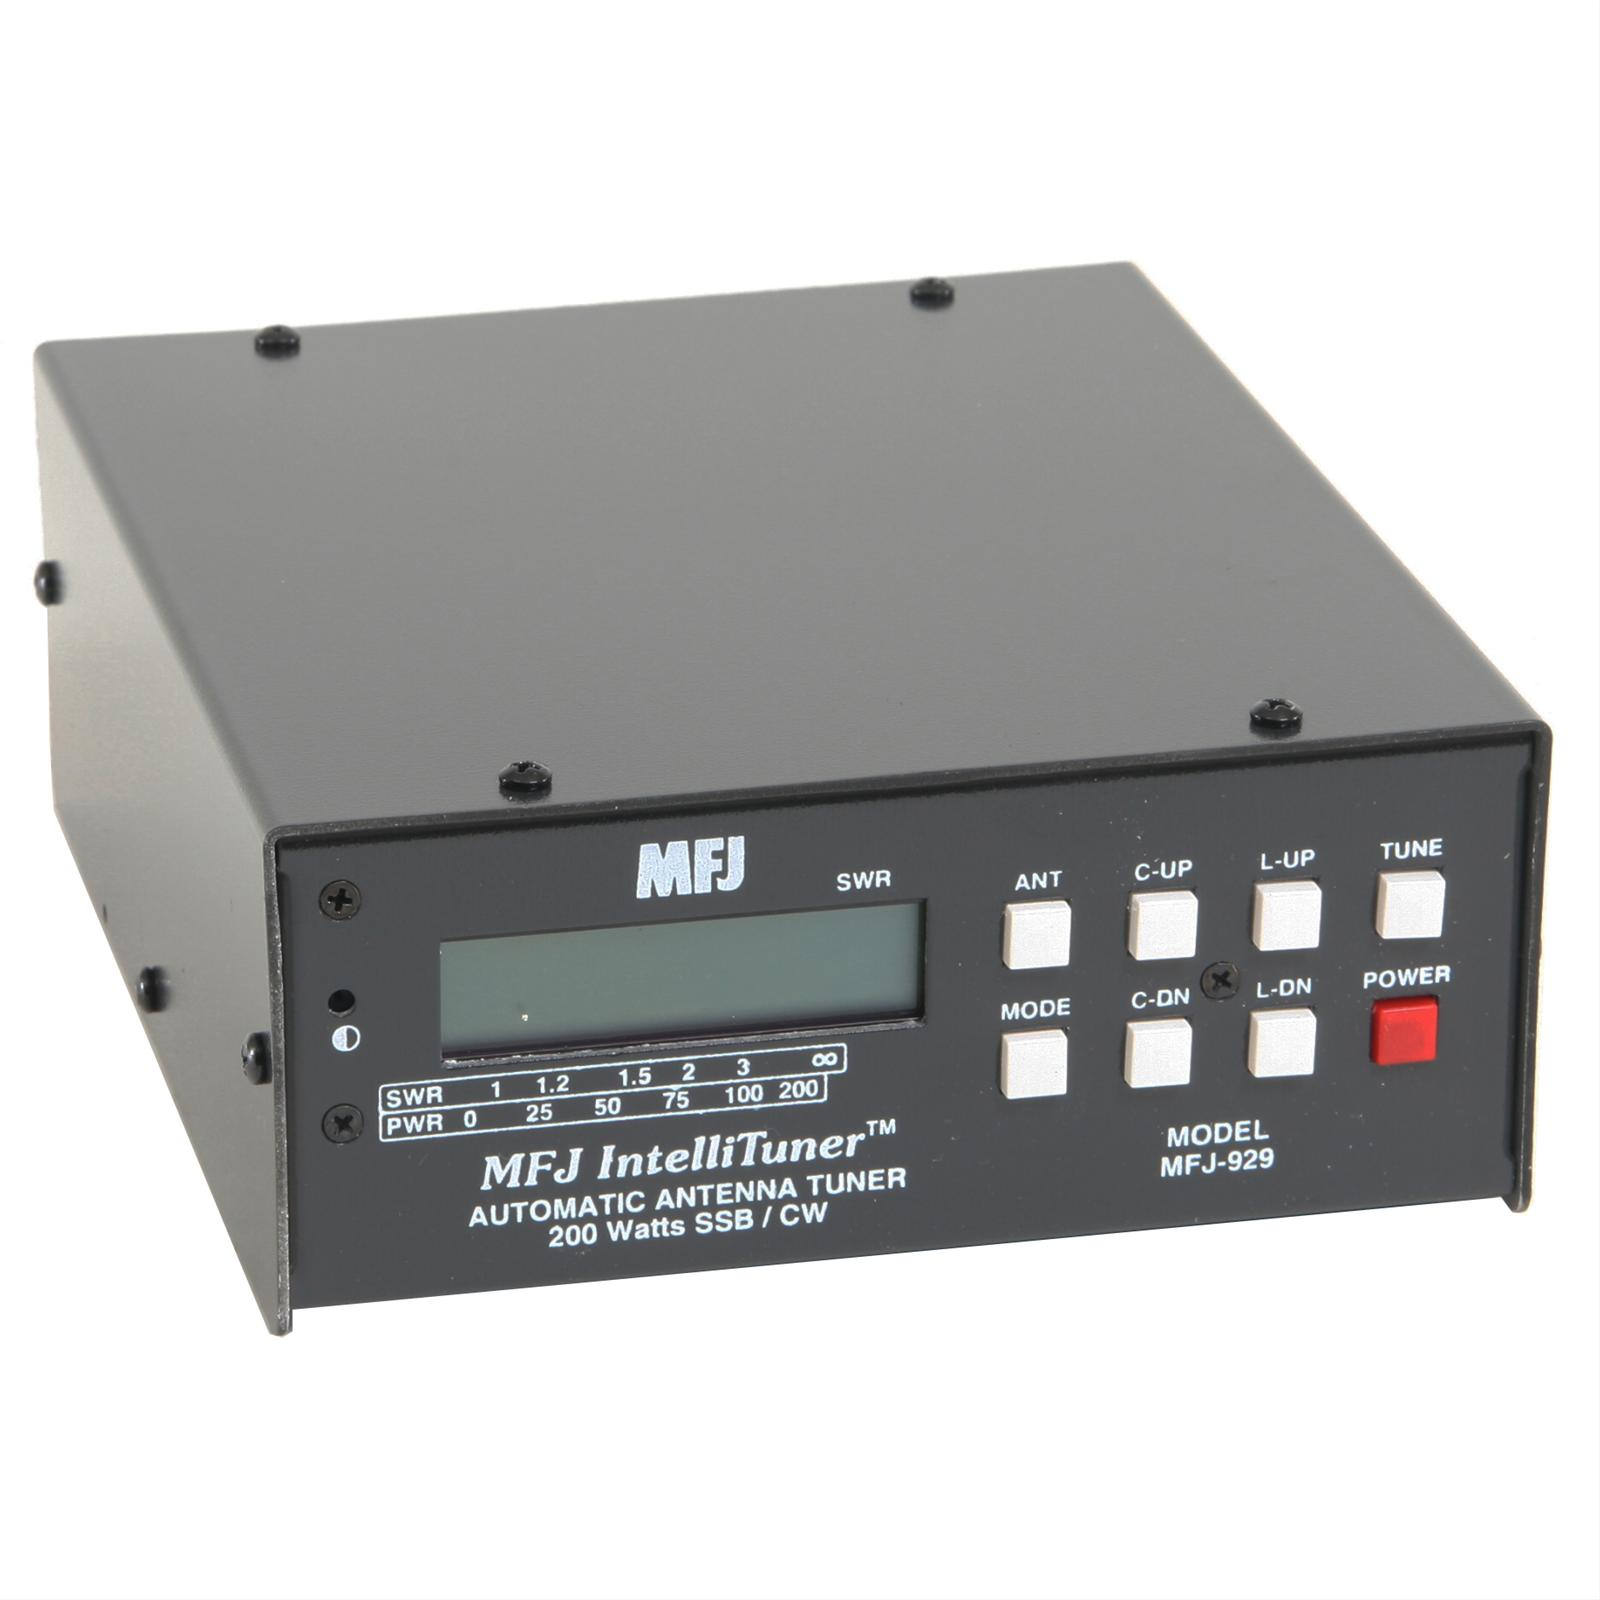 Mfj 929 Compact Intellituner Automatic Antenna Tuners Tuning Unit Free Shipping On Most Orders Over 99 At Dx Engineering